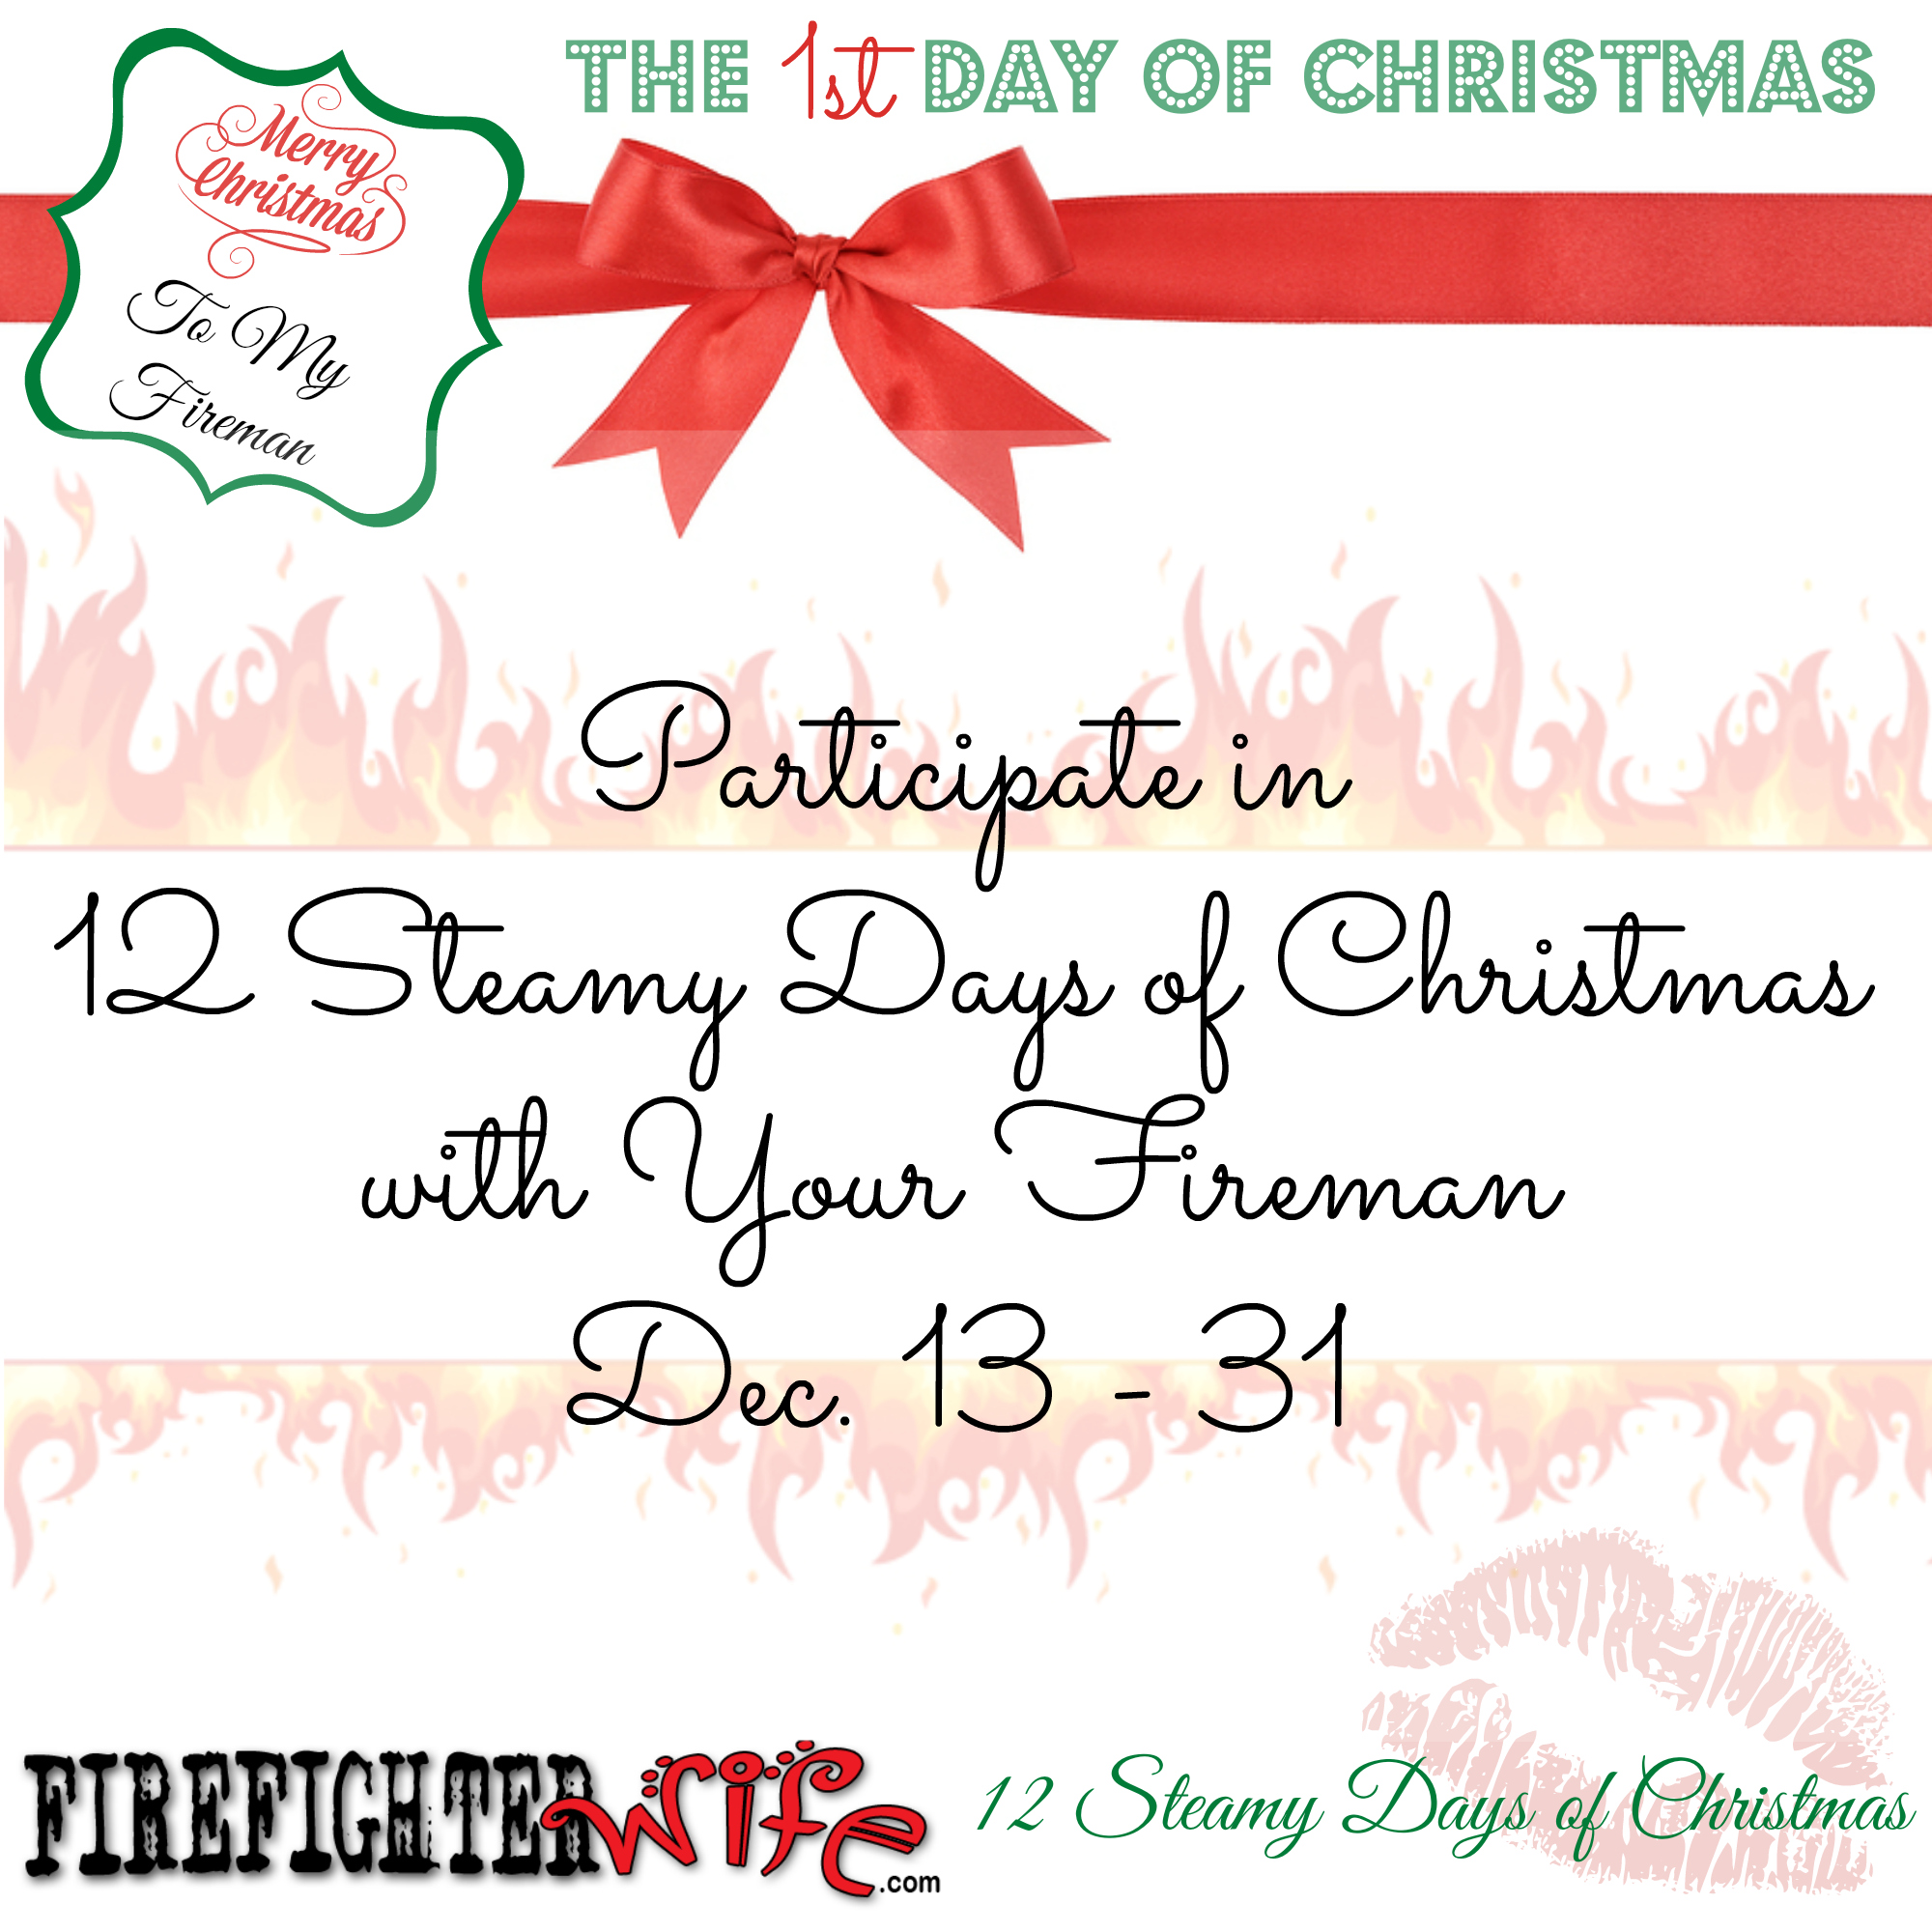 12 Steamy Days of Christmas with Your Fireman